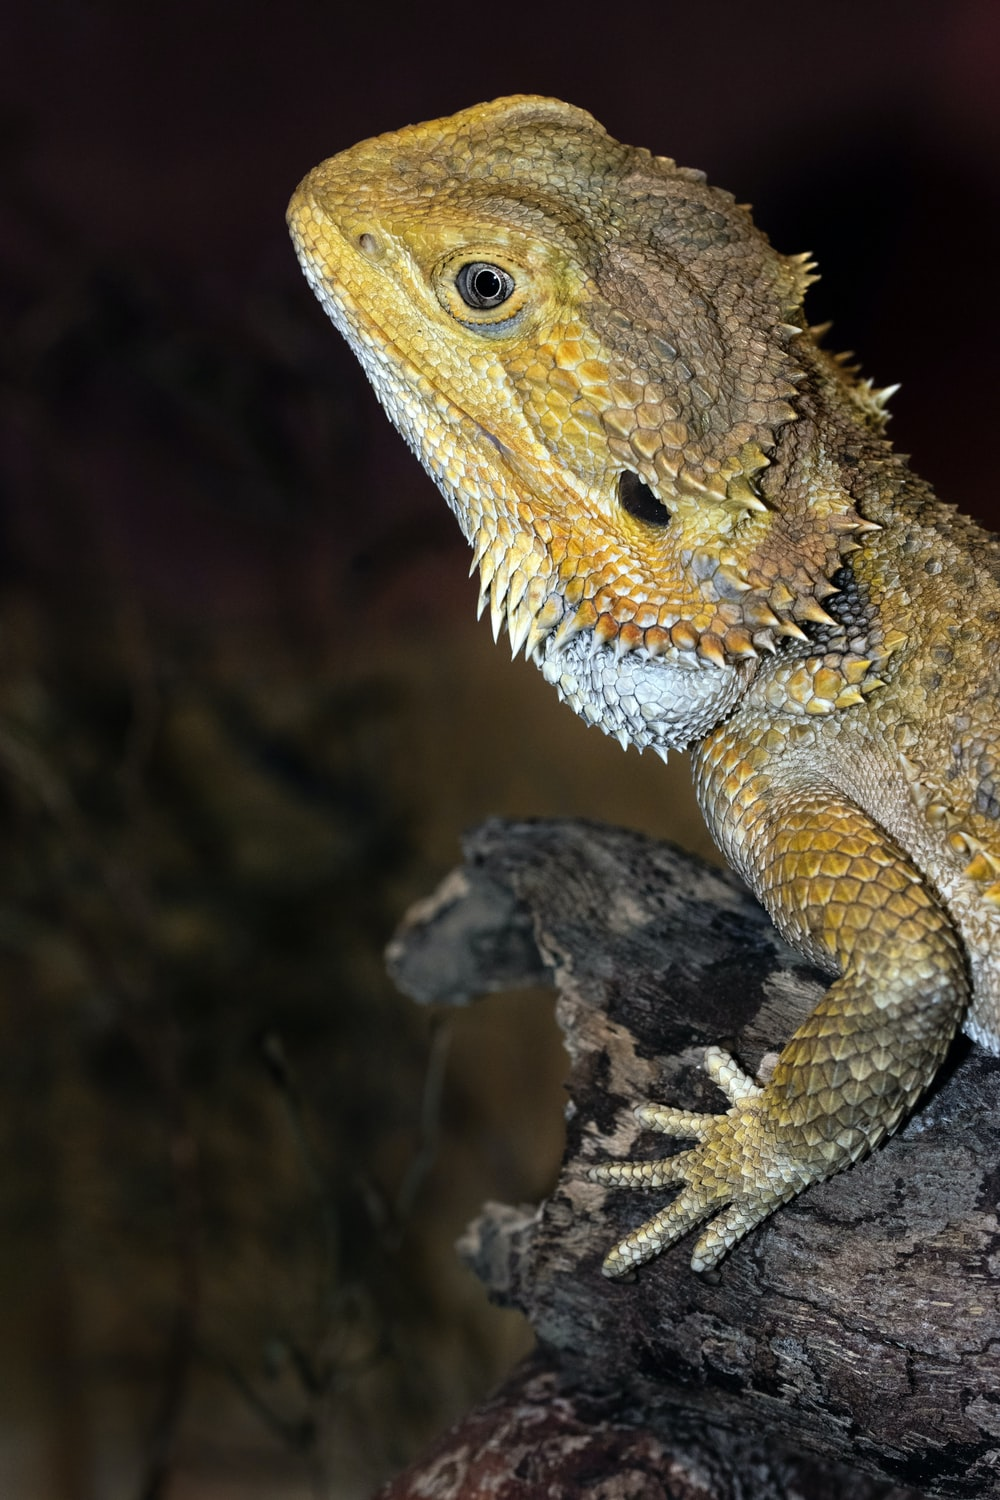 brown and white bearded dragon on brown tree branch